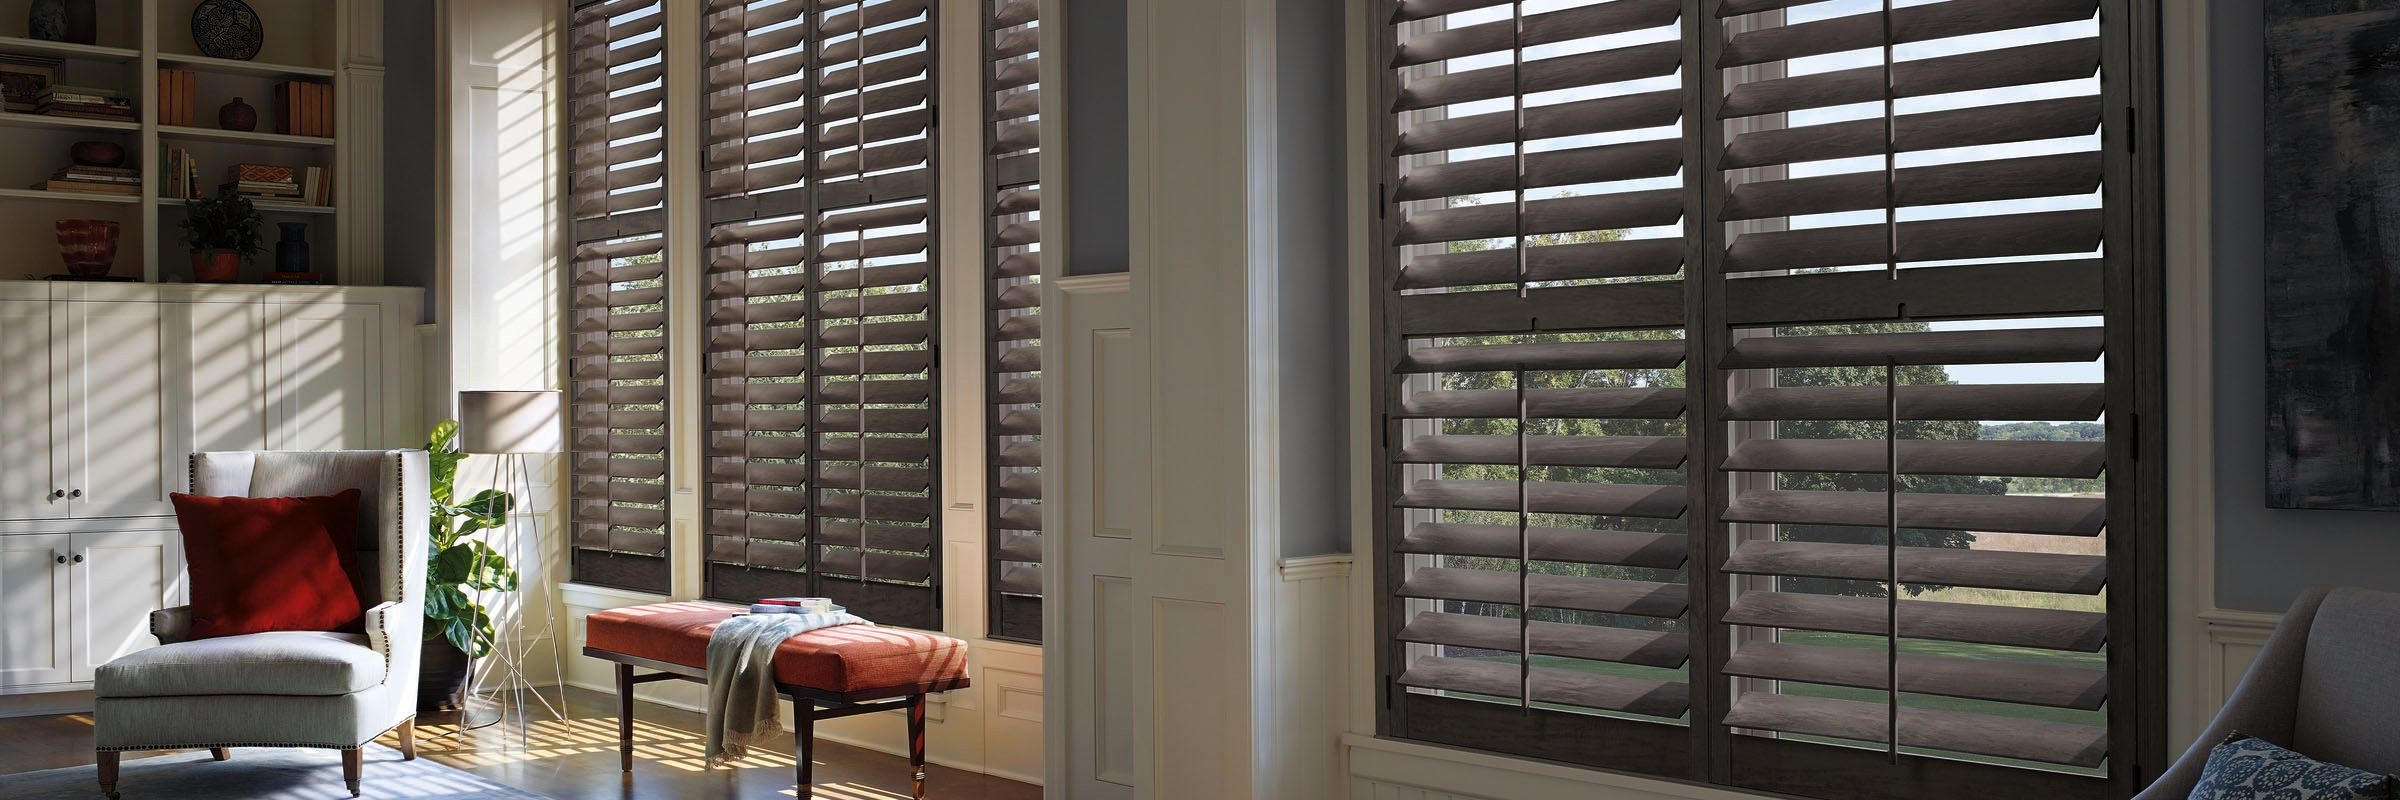 Shutters Blinds Shades Shutters Commercial